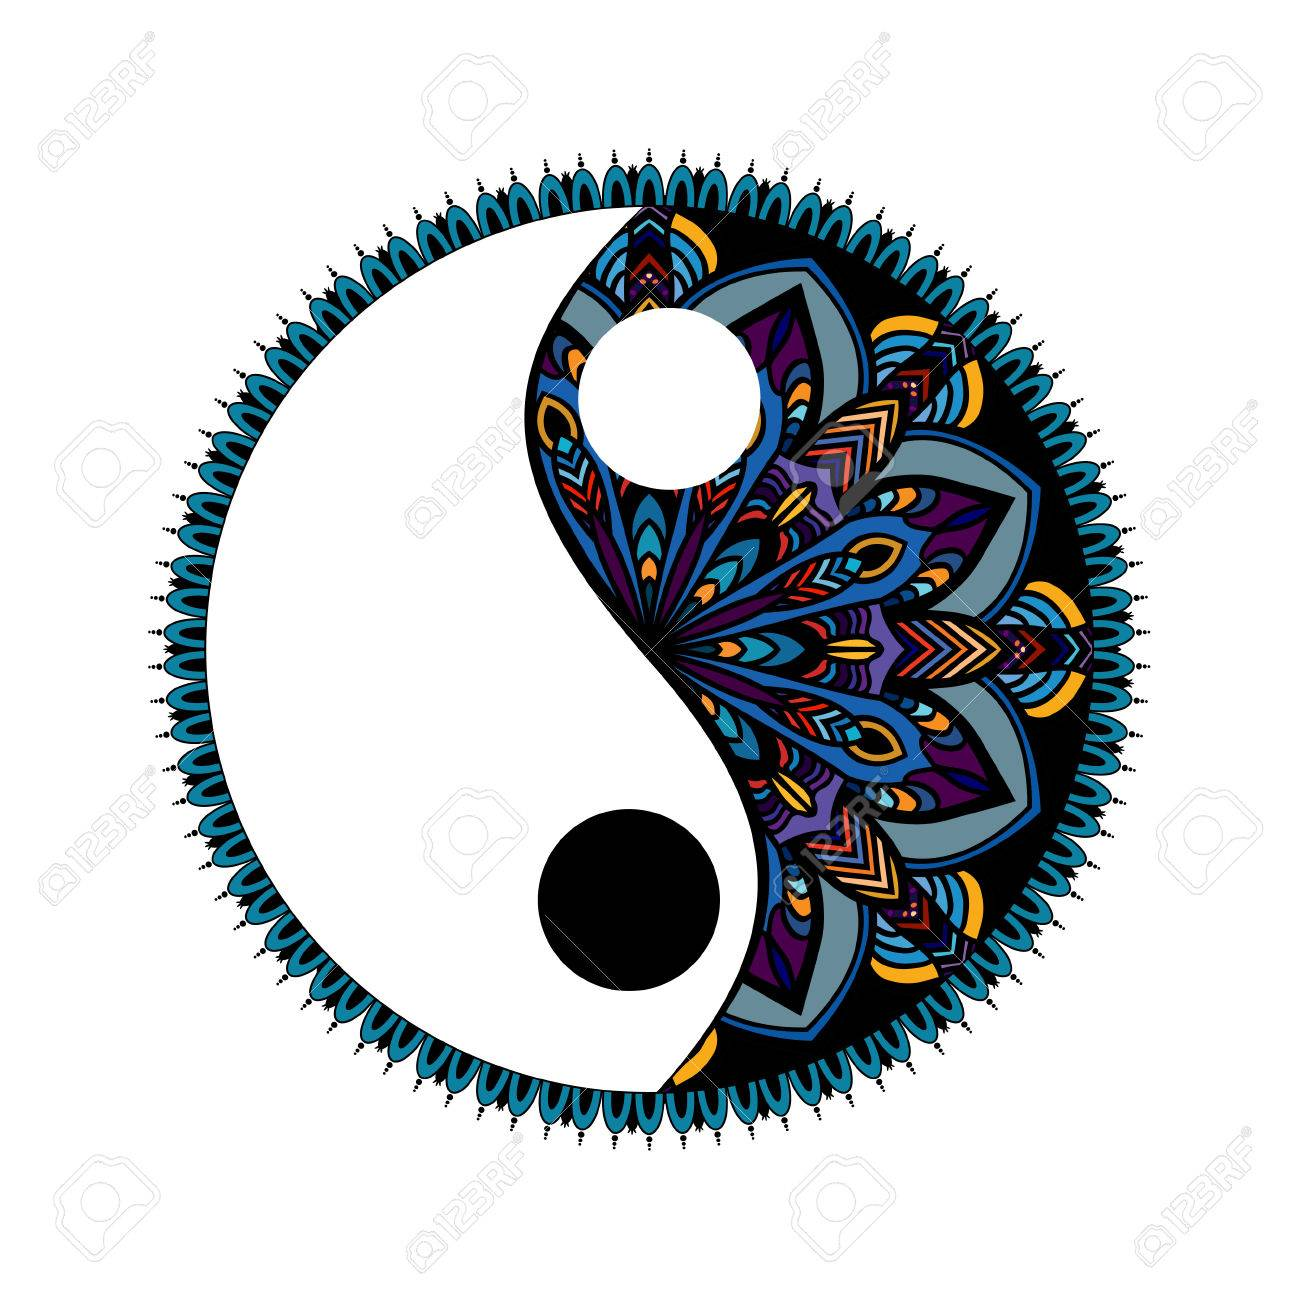 Multicolored Yin Yang Decorative Symbol Hand Drawn Vintage Style